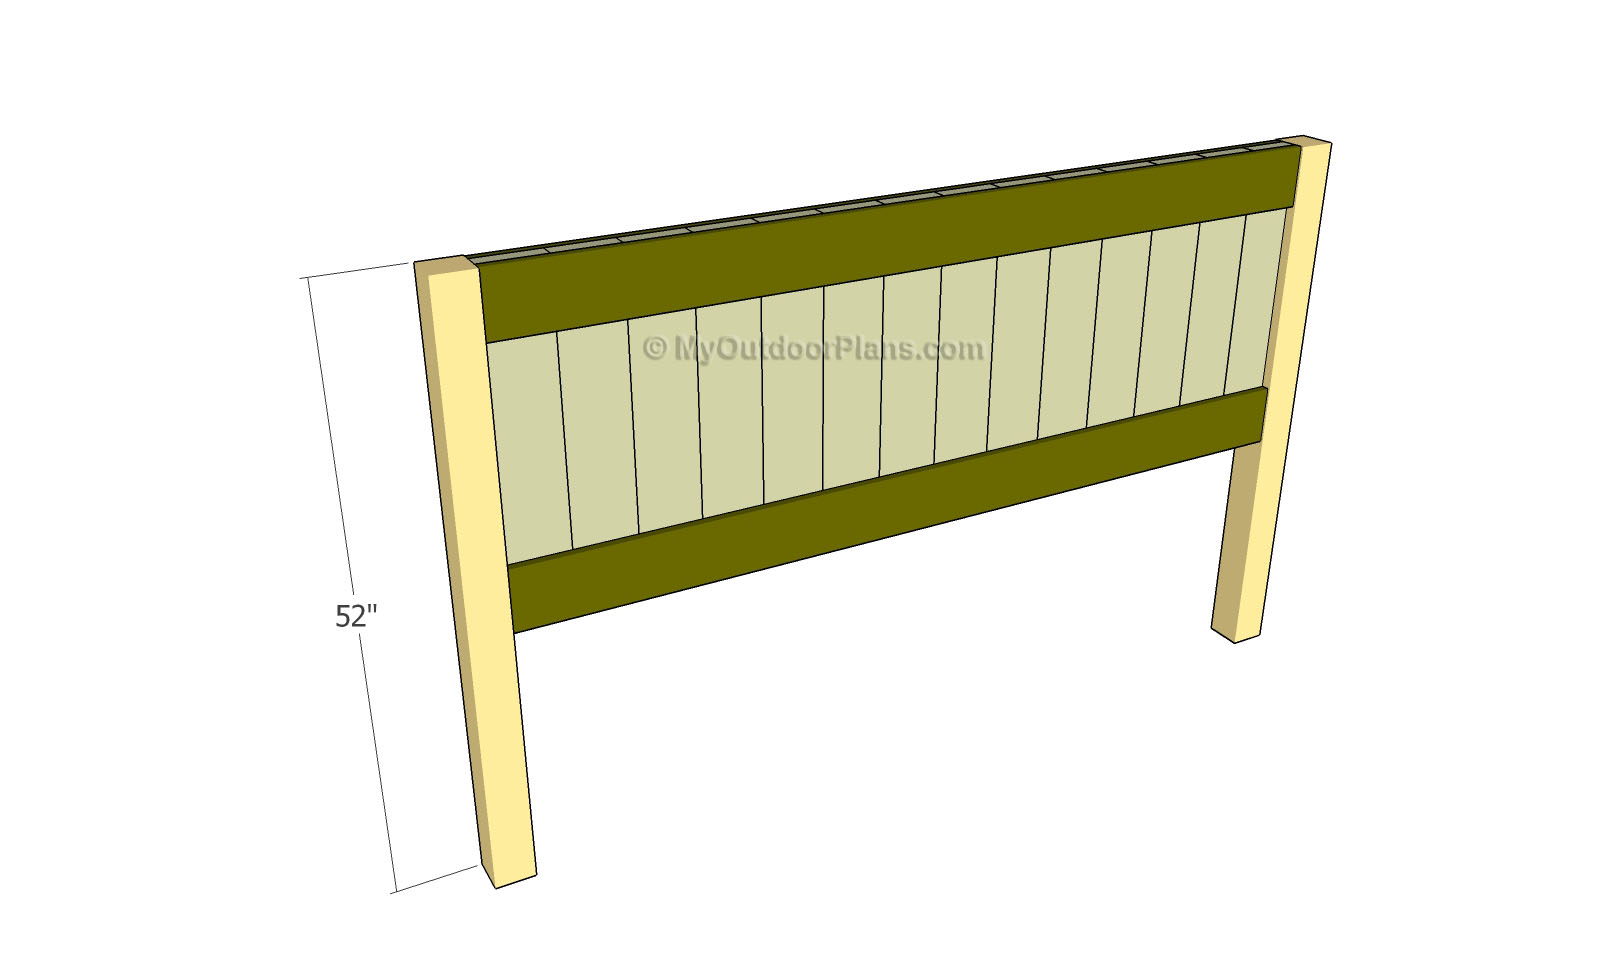 Bed Headboard Plans | Free Outdoor Plans - DIY Shed, Wooden Playhouse ...